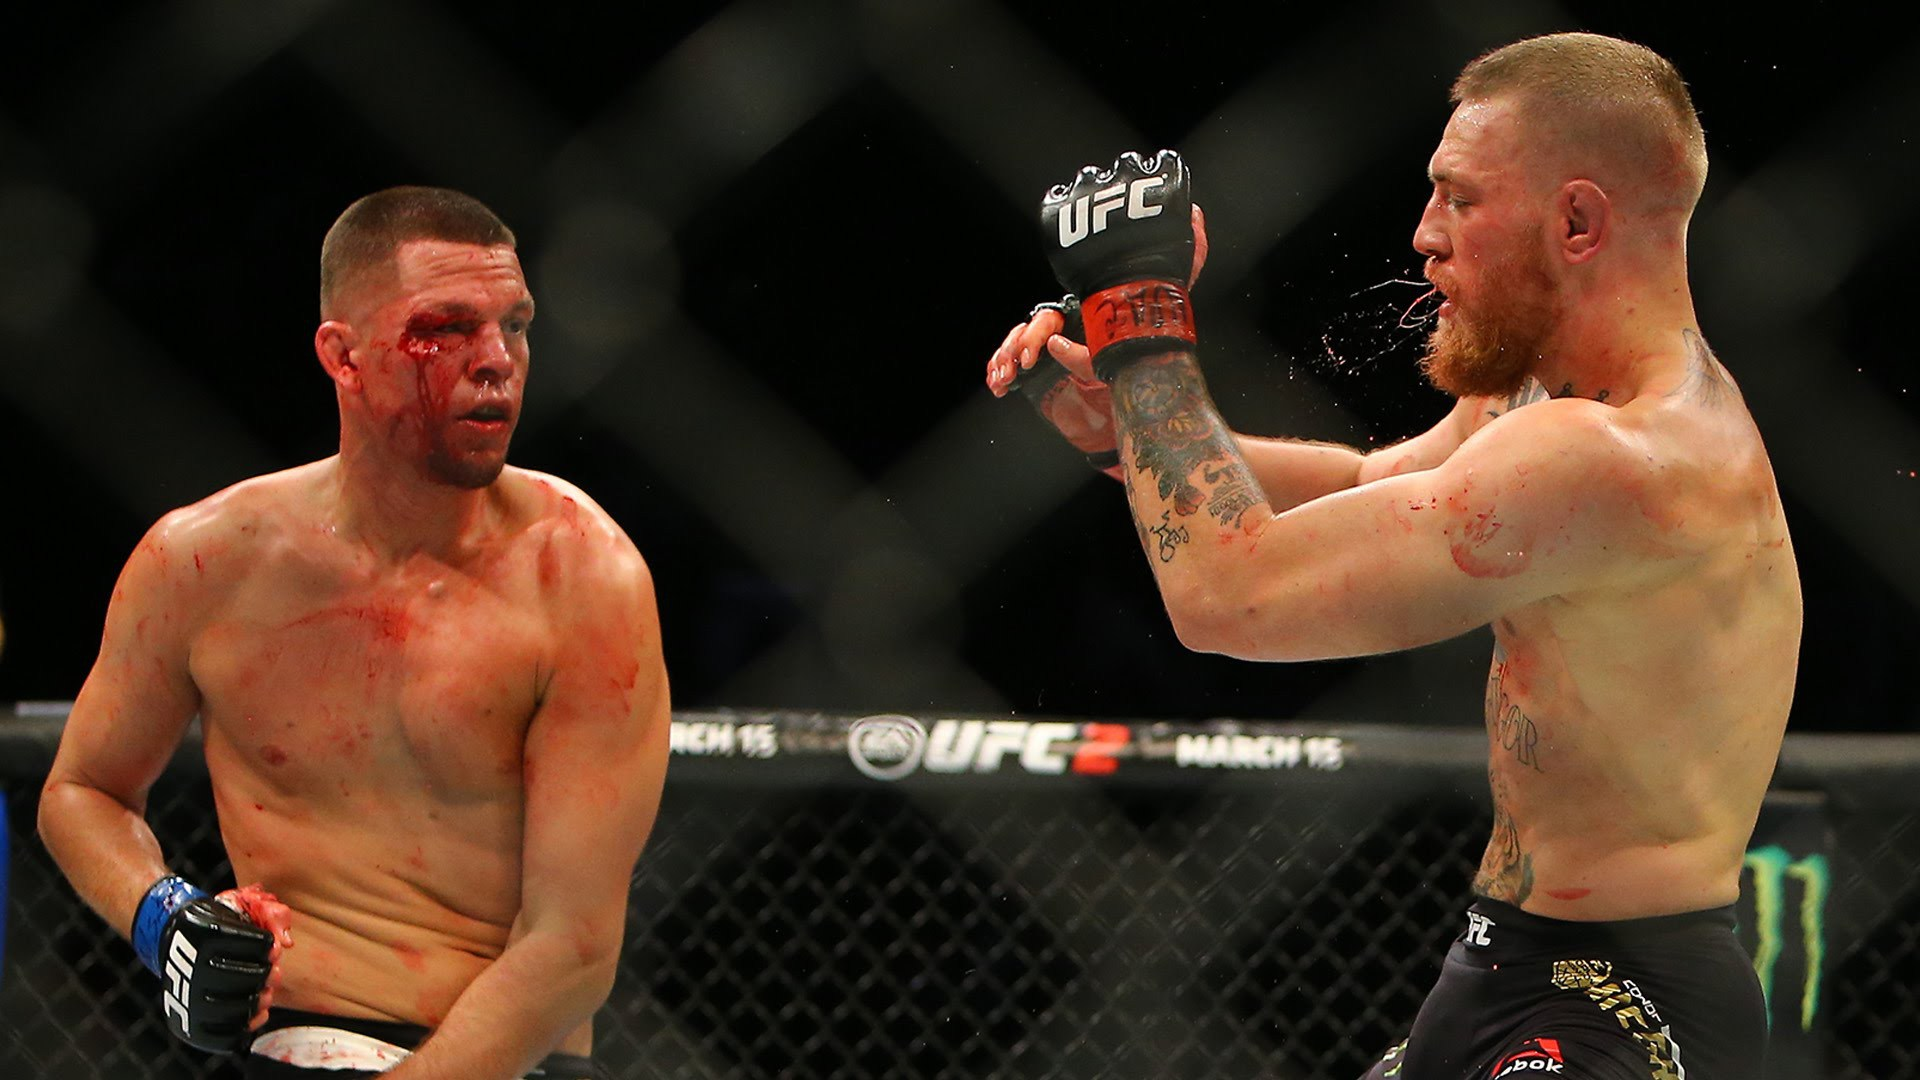 Pictures Of Nate Diaz